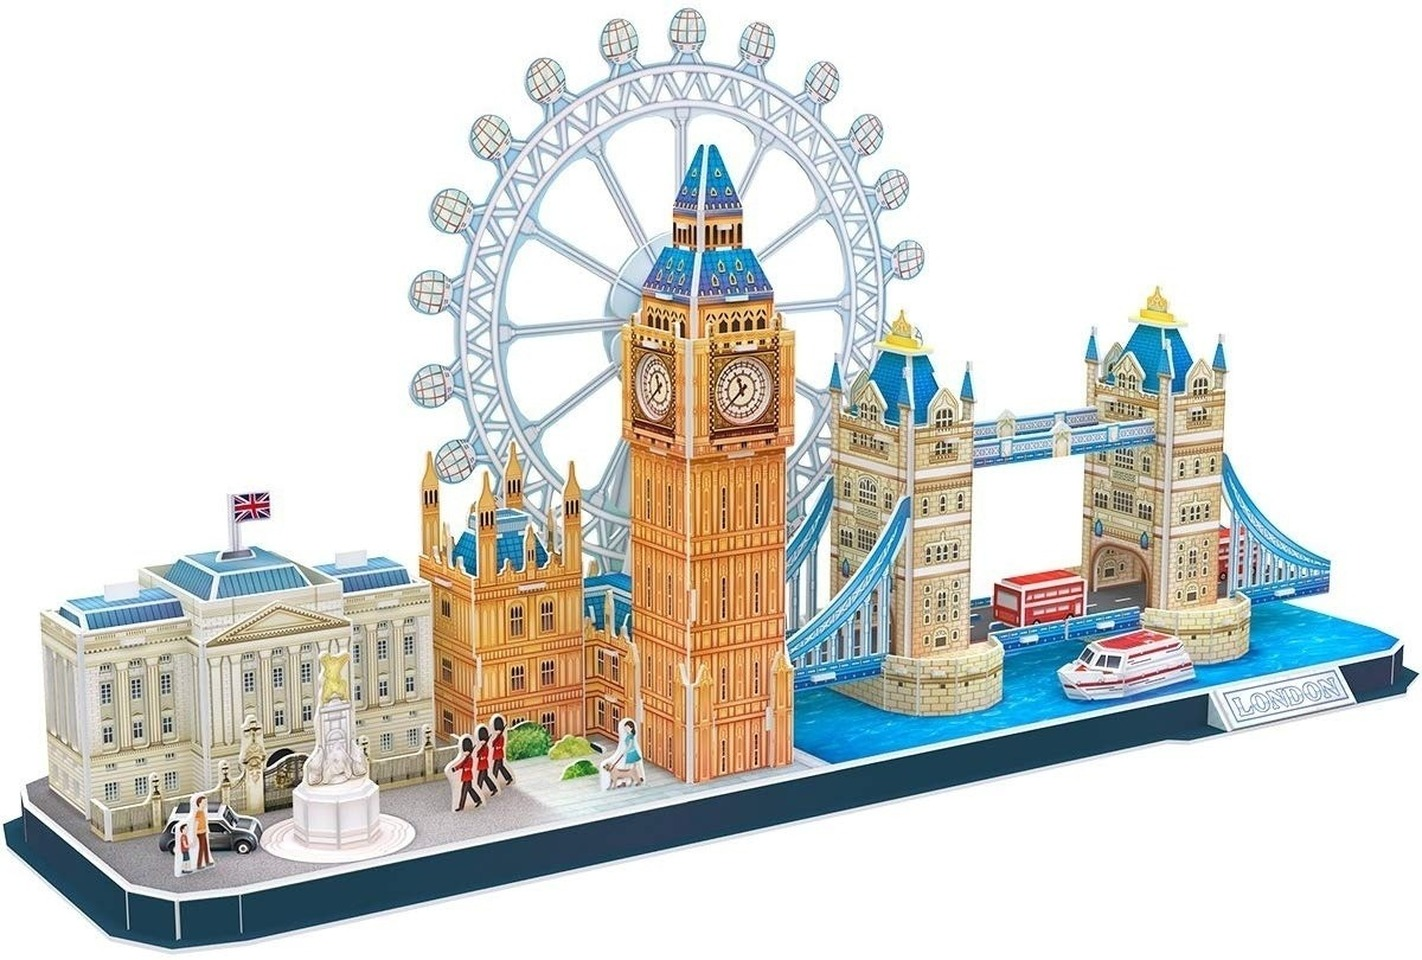 Architecture Puzzle 3D London Cityline Building Model Kits Collection Toys for Adults and Child Games and Puzzles Toys MC253h